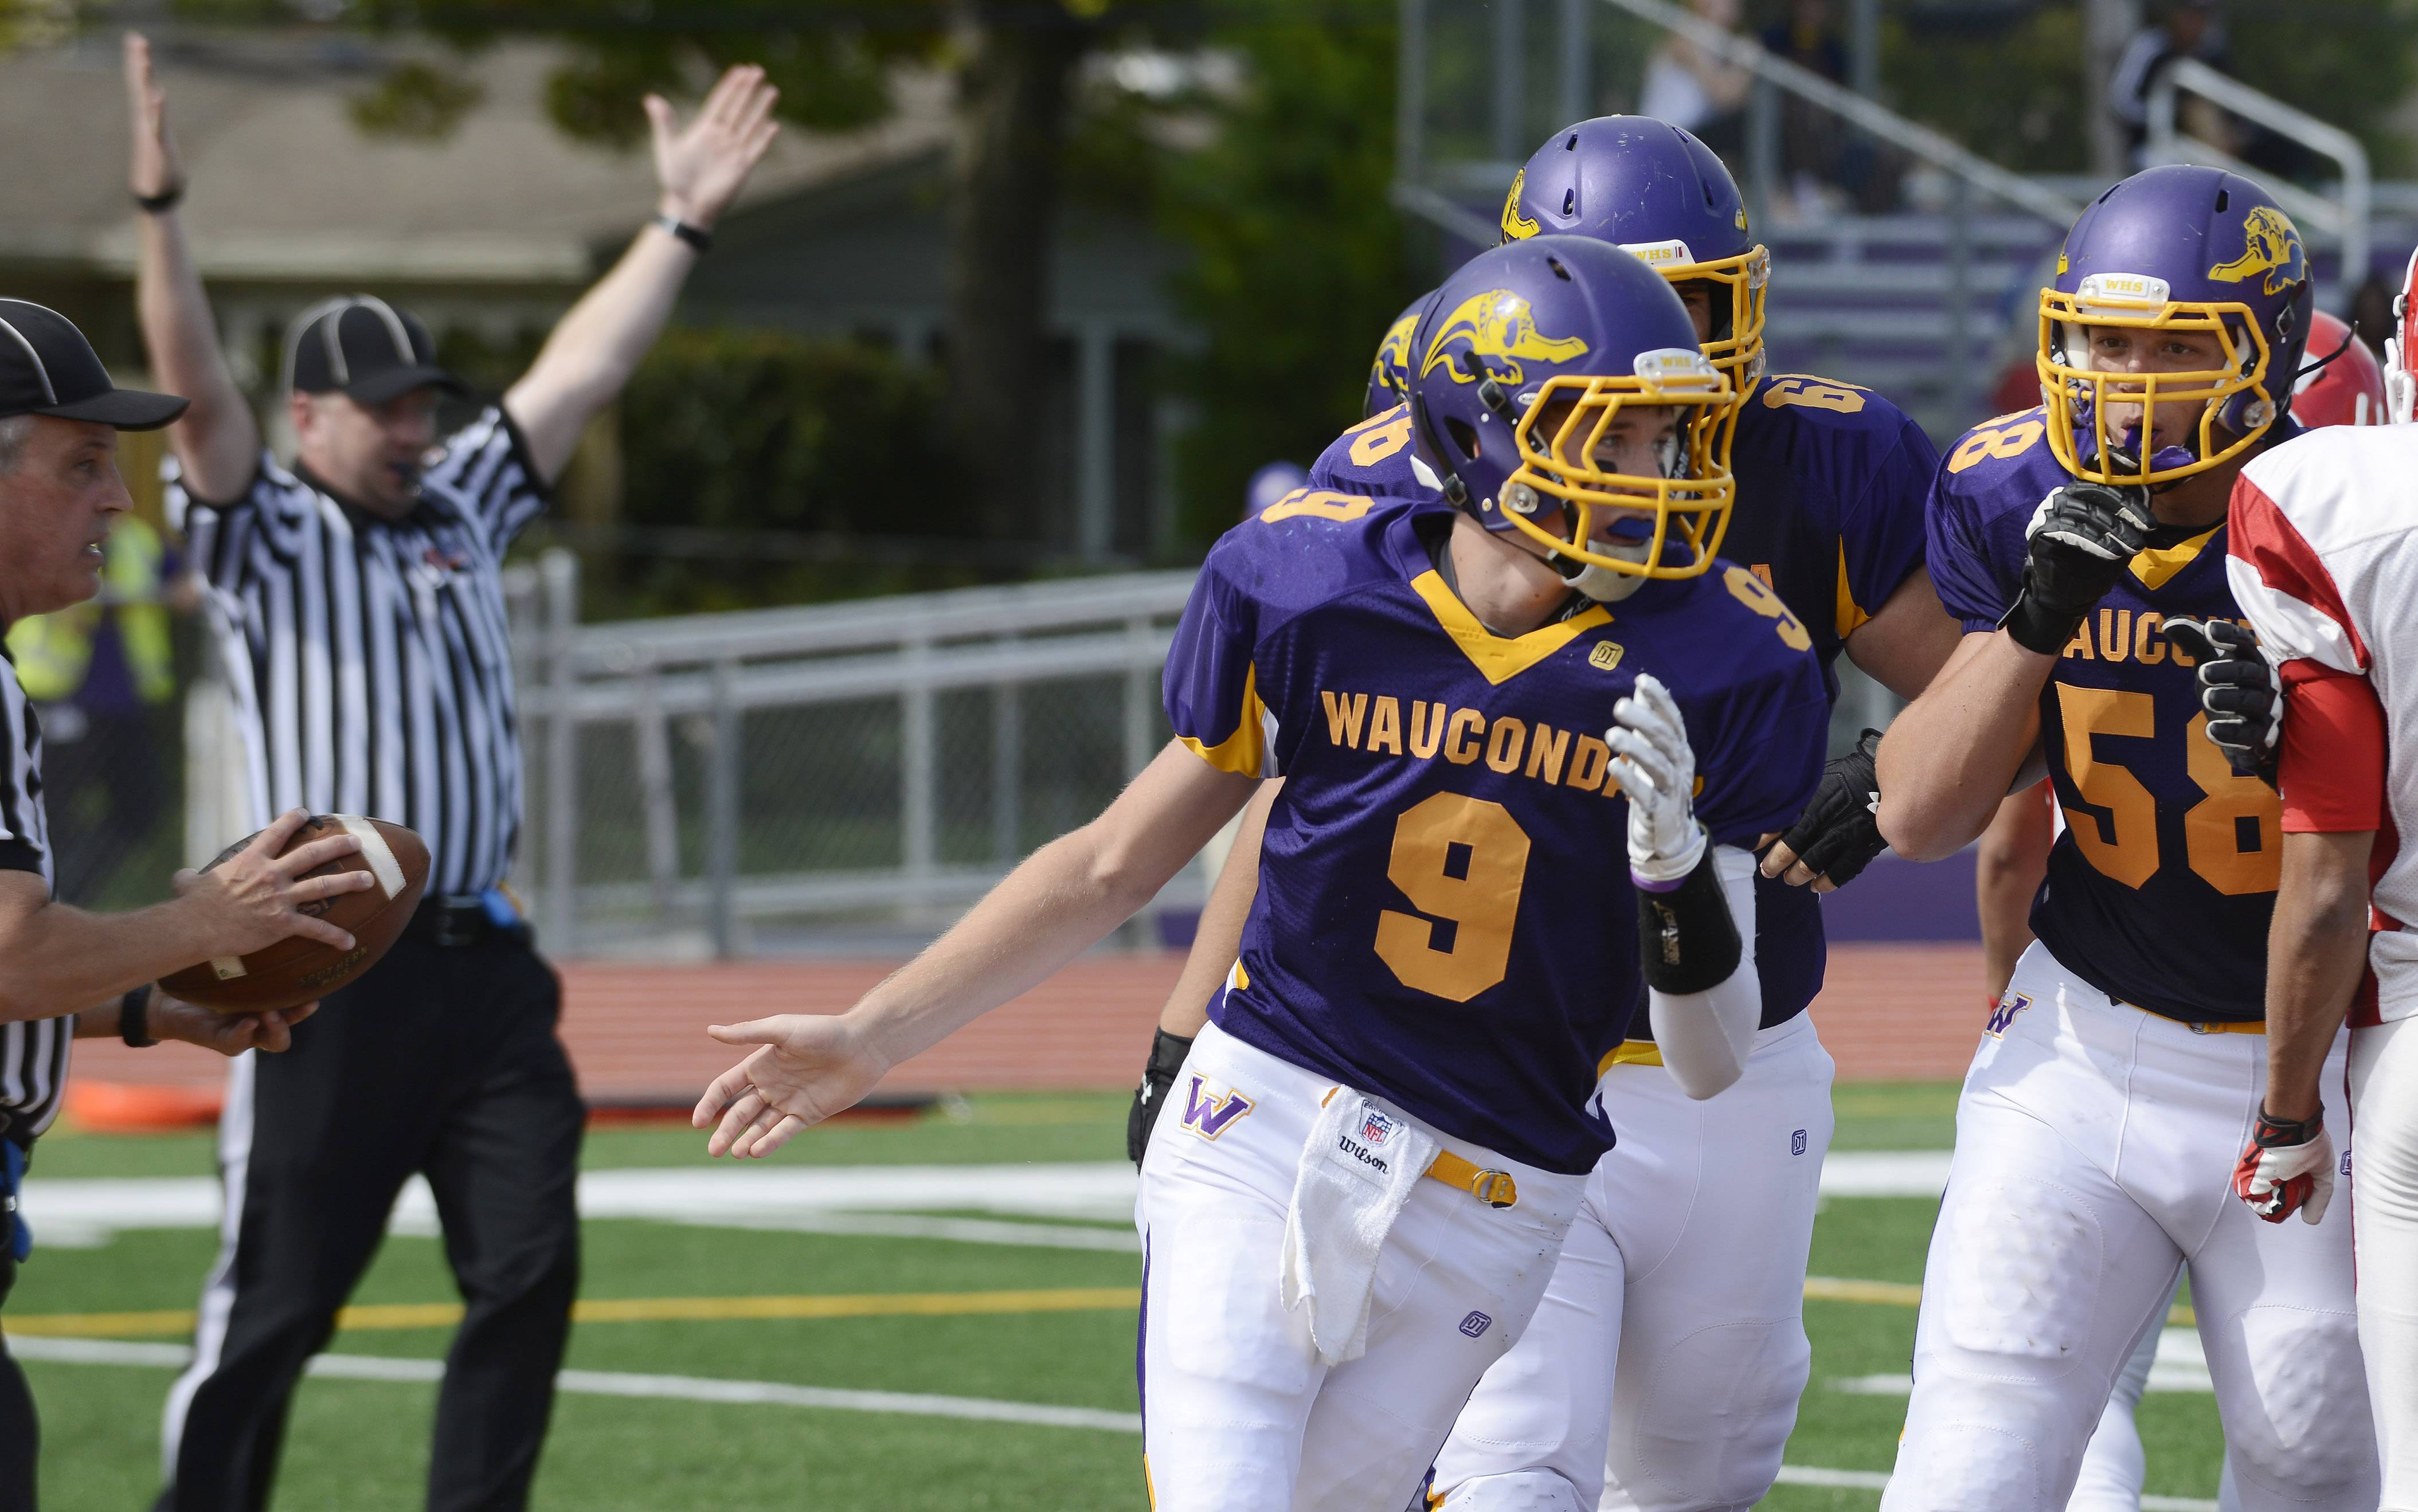 Wauconda quarterback Kevin Malesheski celebrates with his teammates after scoring a first-quarter touchdown during Saturday's game against North Chicago.